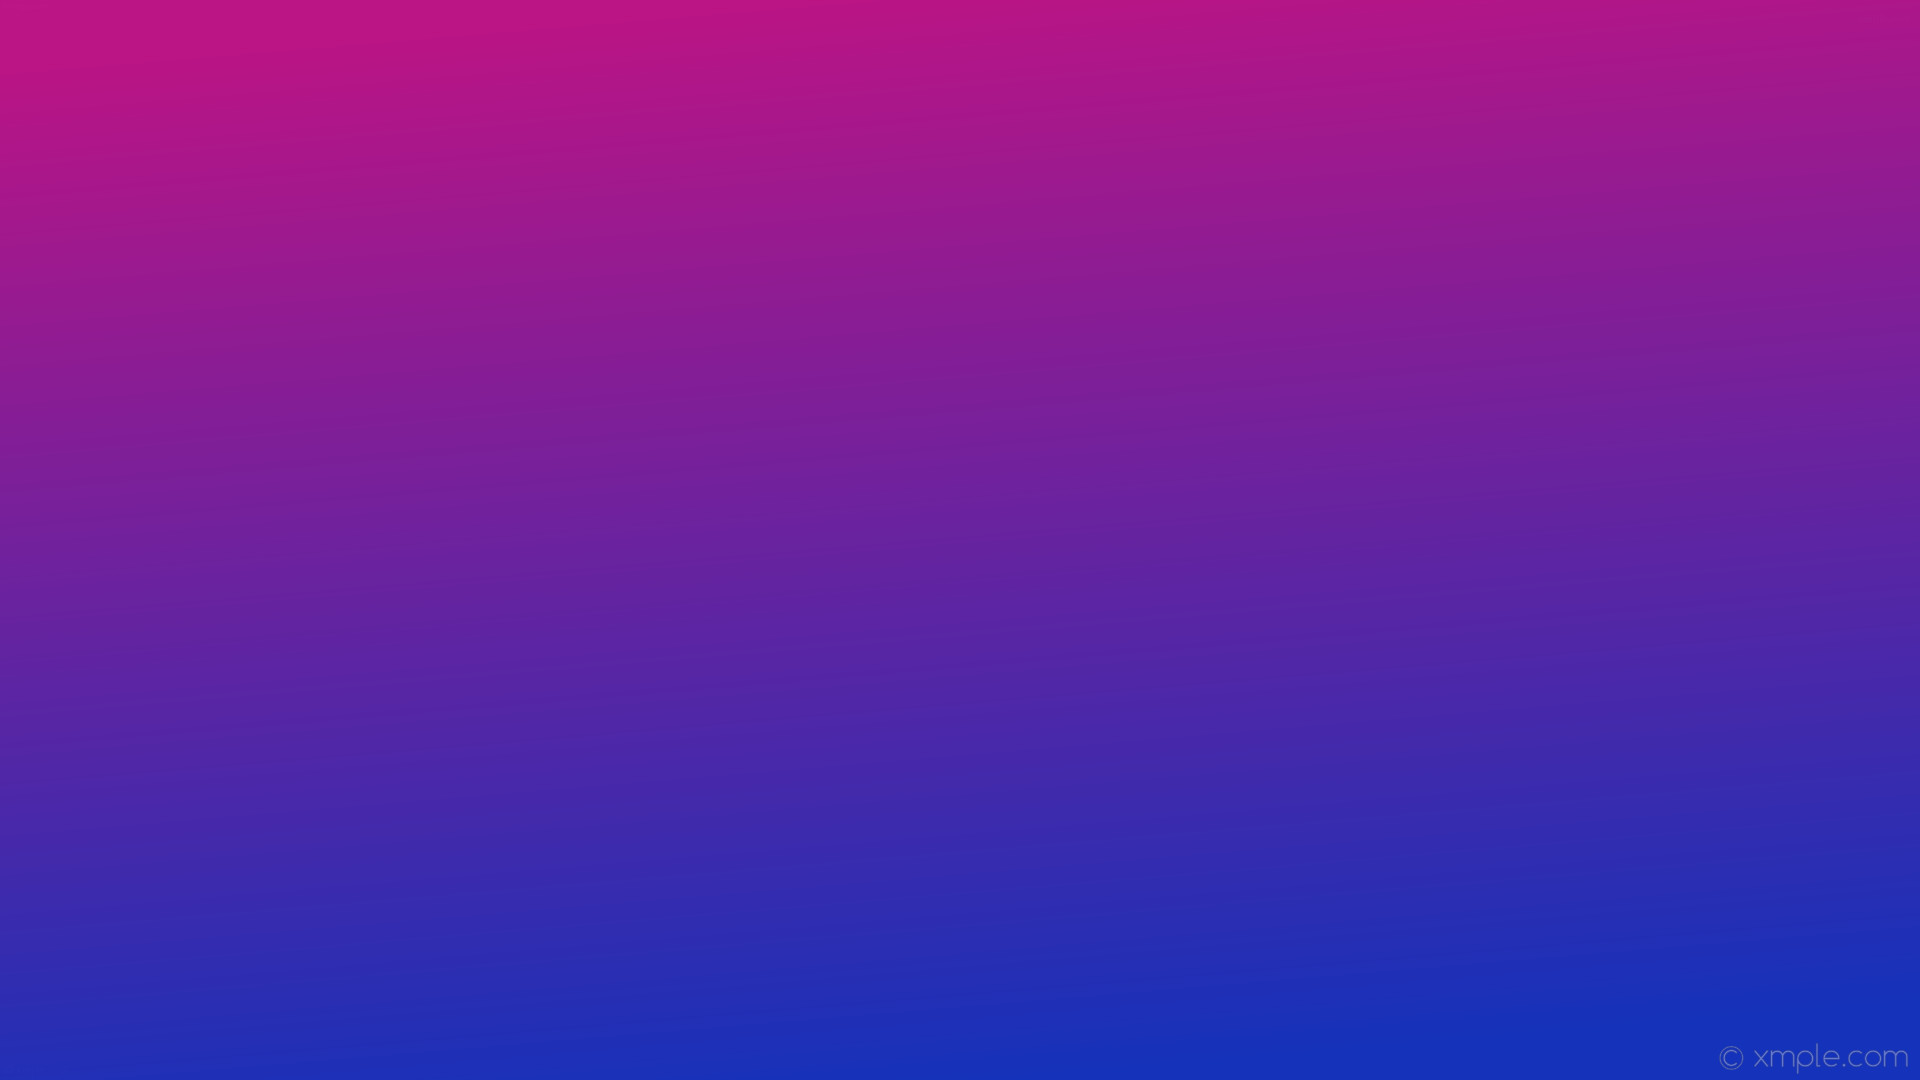 Pink Purple And Blue Wallpaper Posted By Christopher Sellers